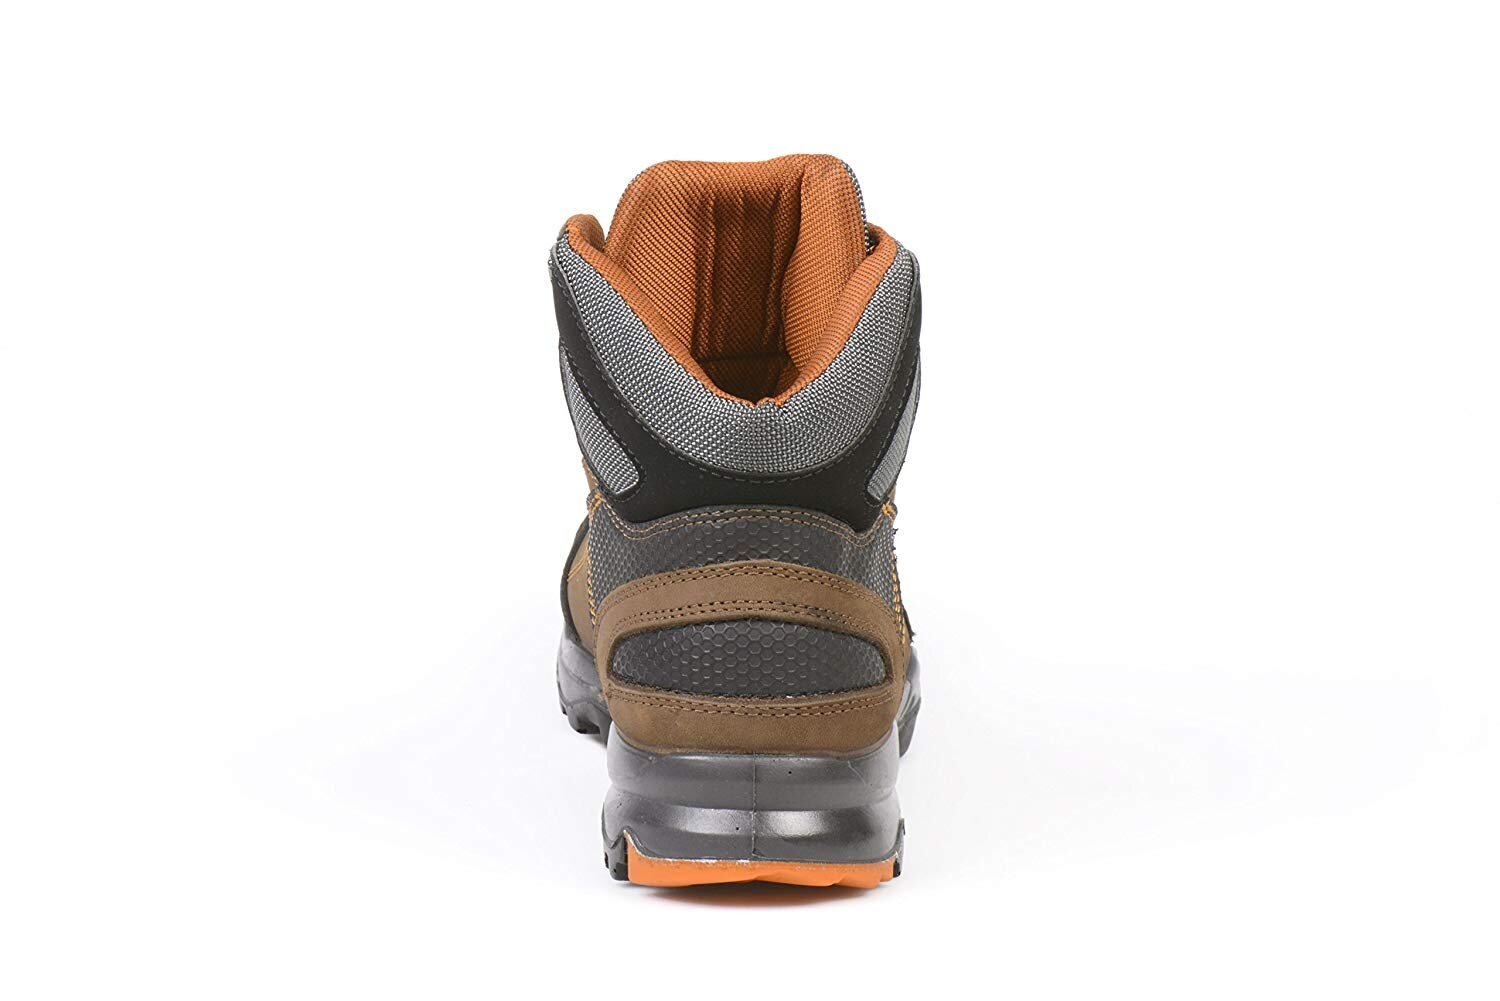 SATURNE BROWN SAFETY BOOT  3